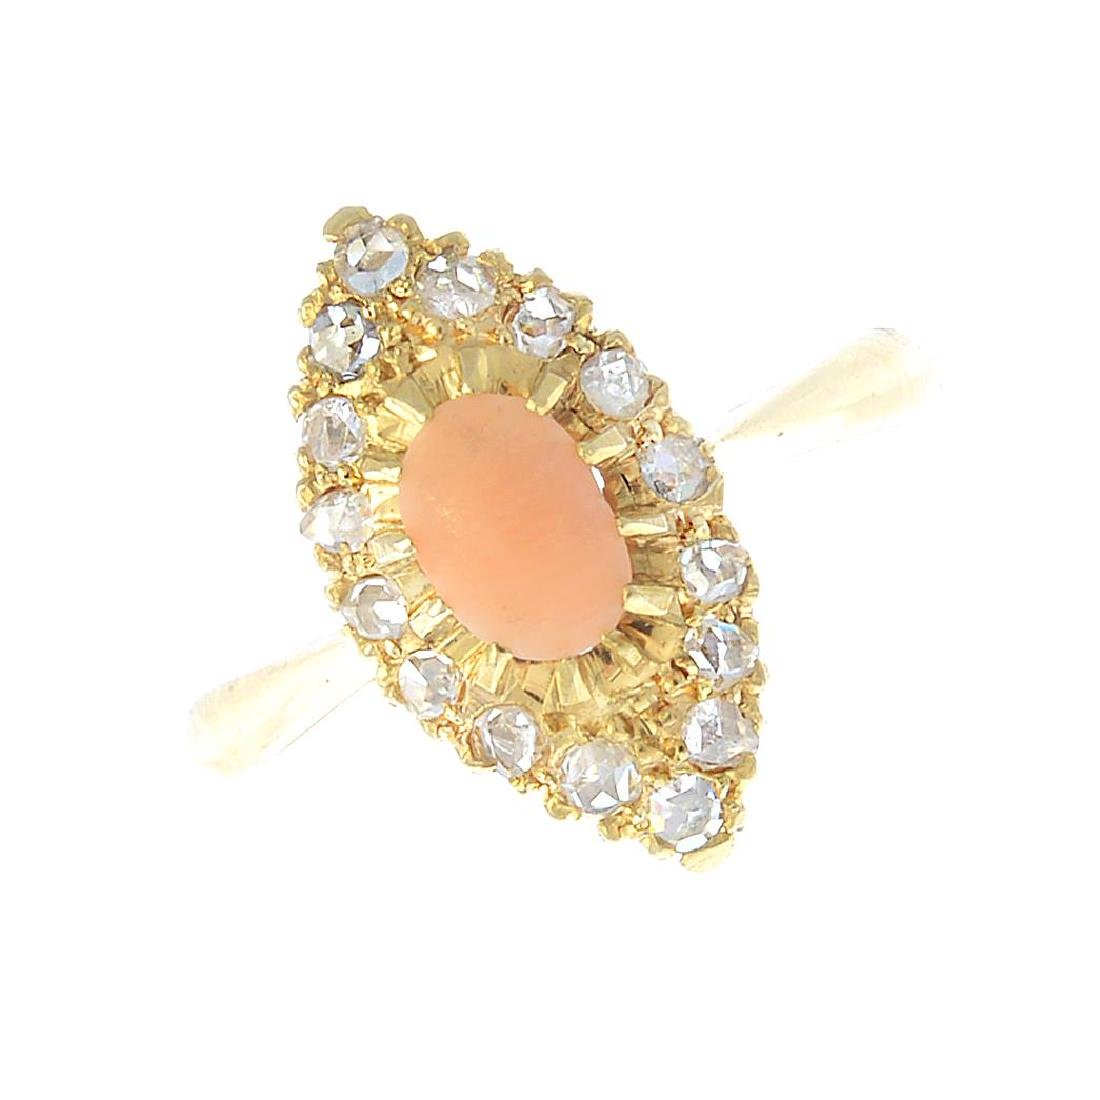 A coral and diamond dress ring. The oval coral